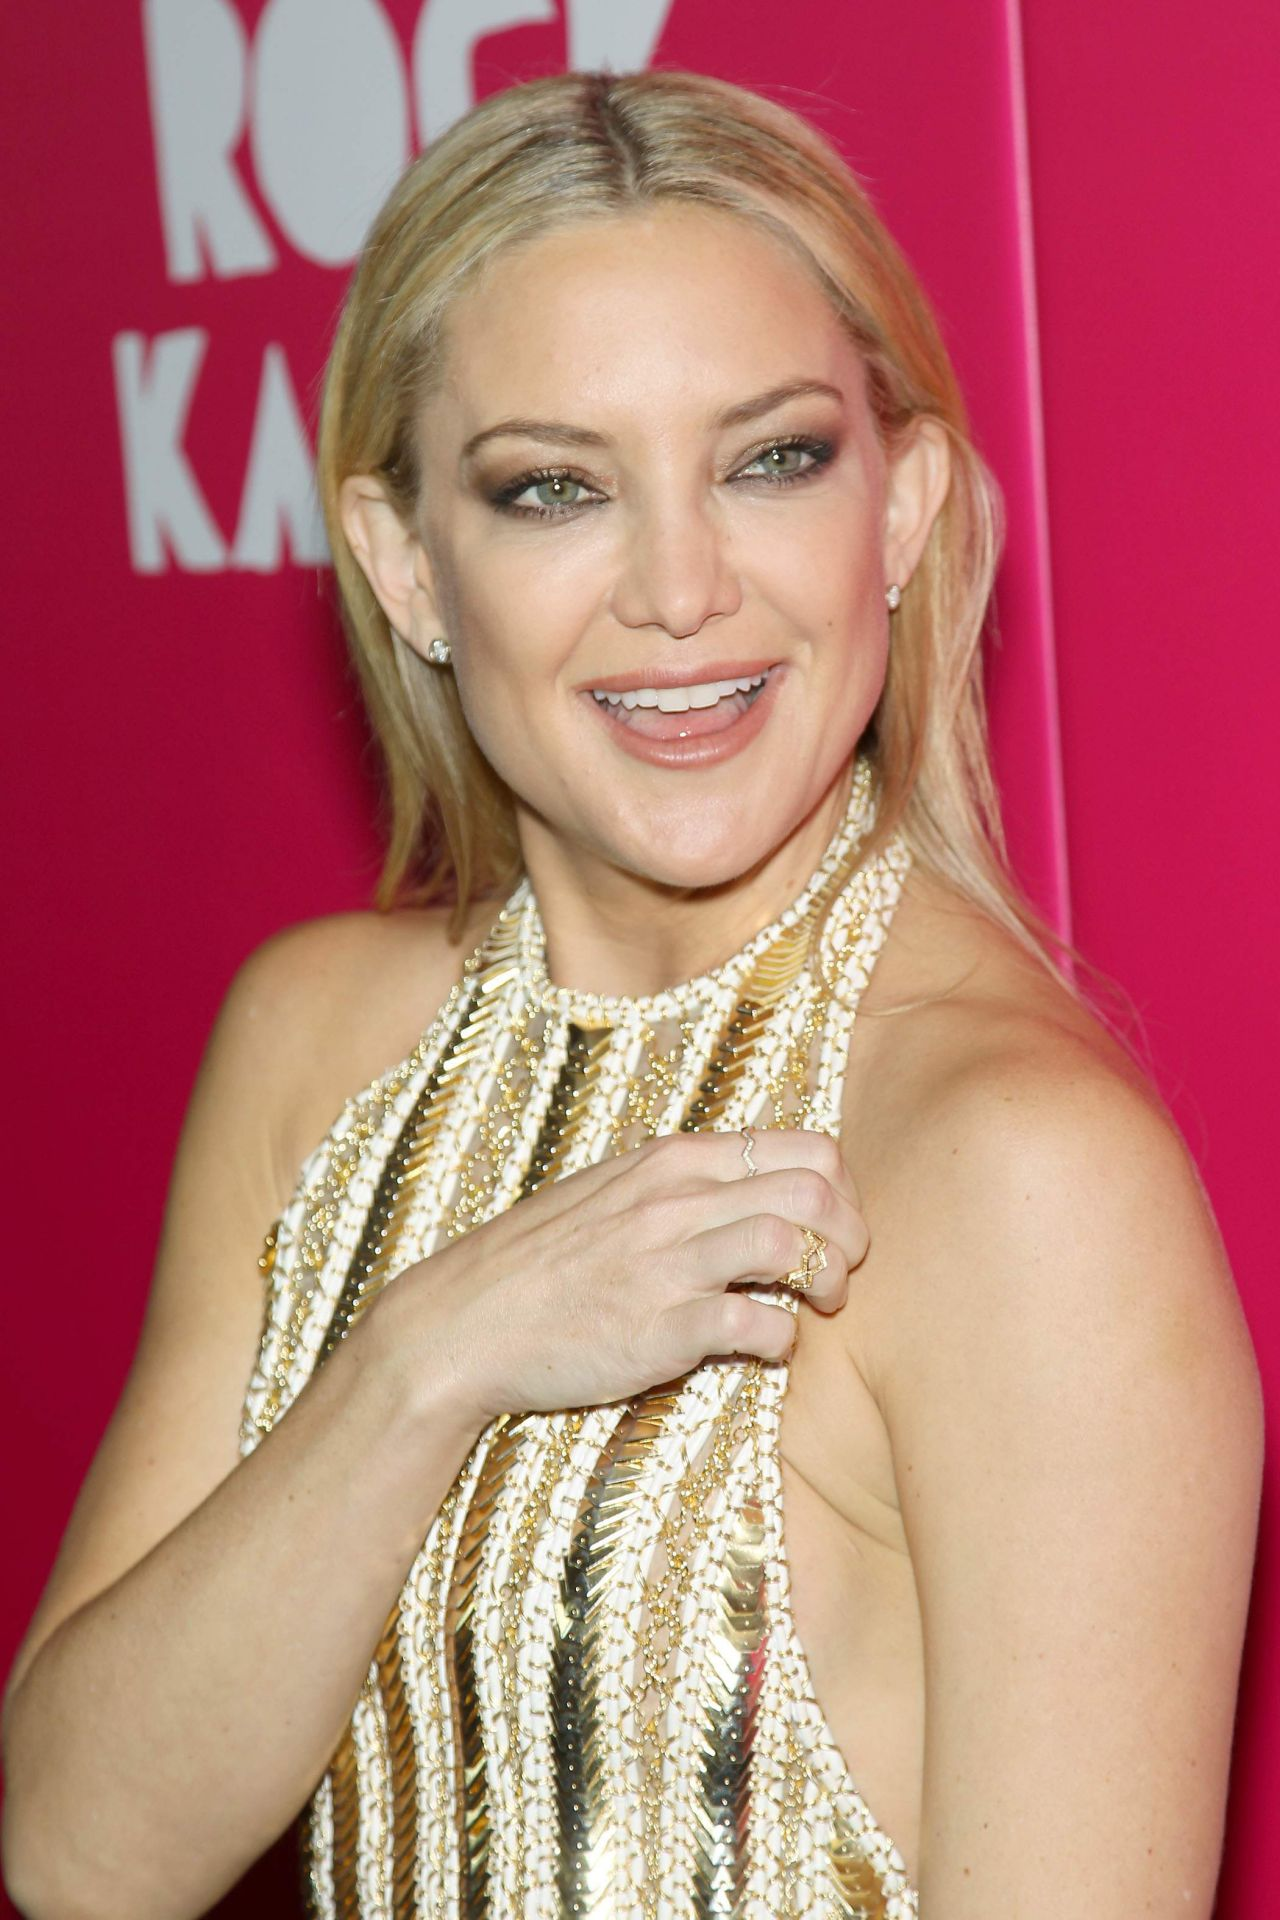 Kate Hudson - 'Rock The Kasbah' Premiere in New York Kate Hudson